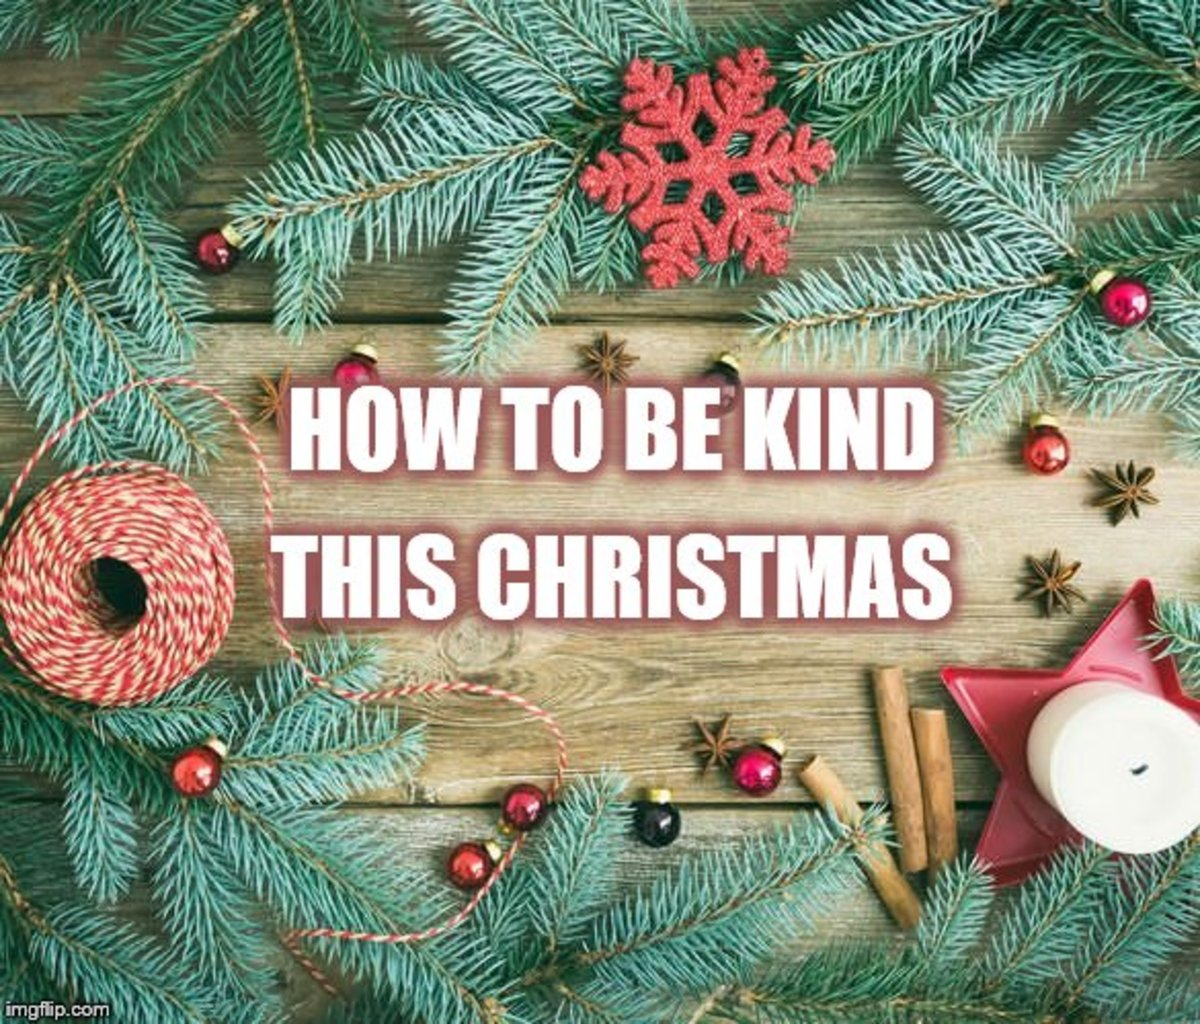 How to Be Kind This Christmas